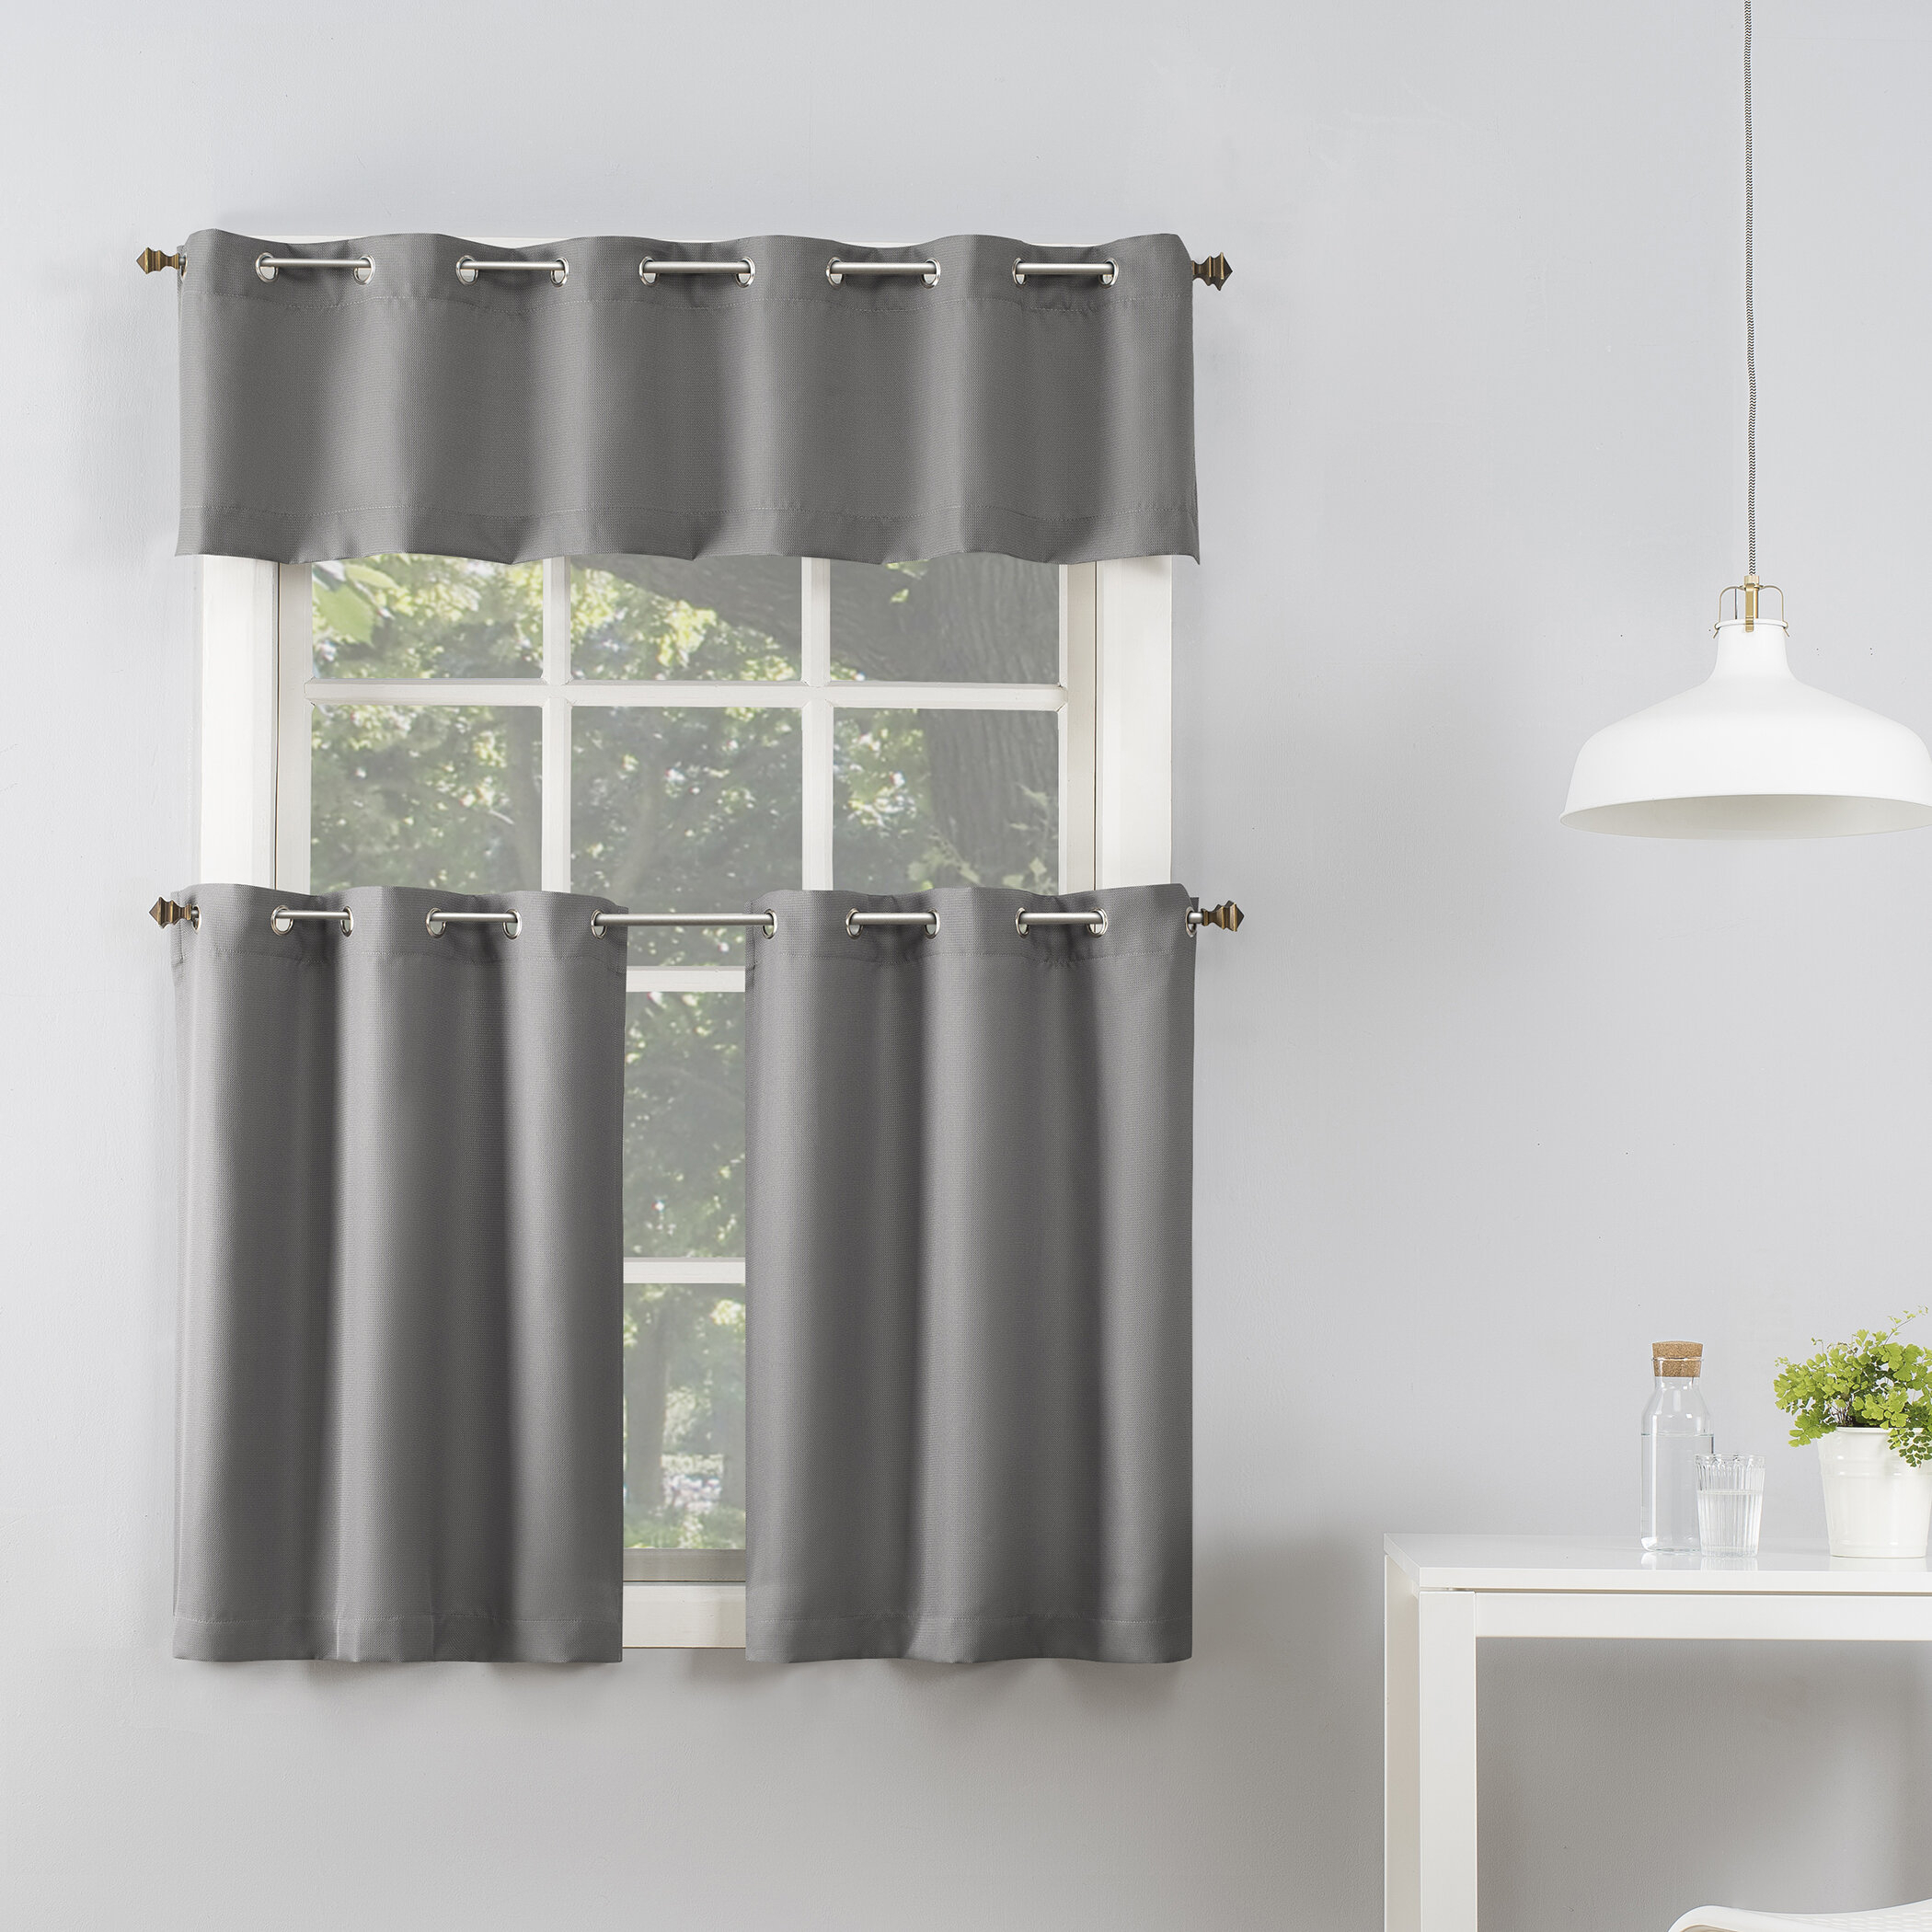 Jakubowski Casual Textured 3 Piece Semi Sheer Grommet Tier And Kitchen Window Valance Throughout Chateau Wines Cottage Kitchen Curtain Tier And Valance Sets (View 12 of 20)